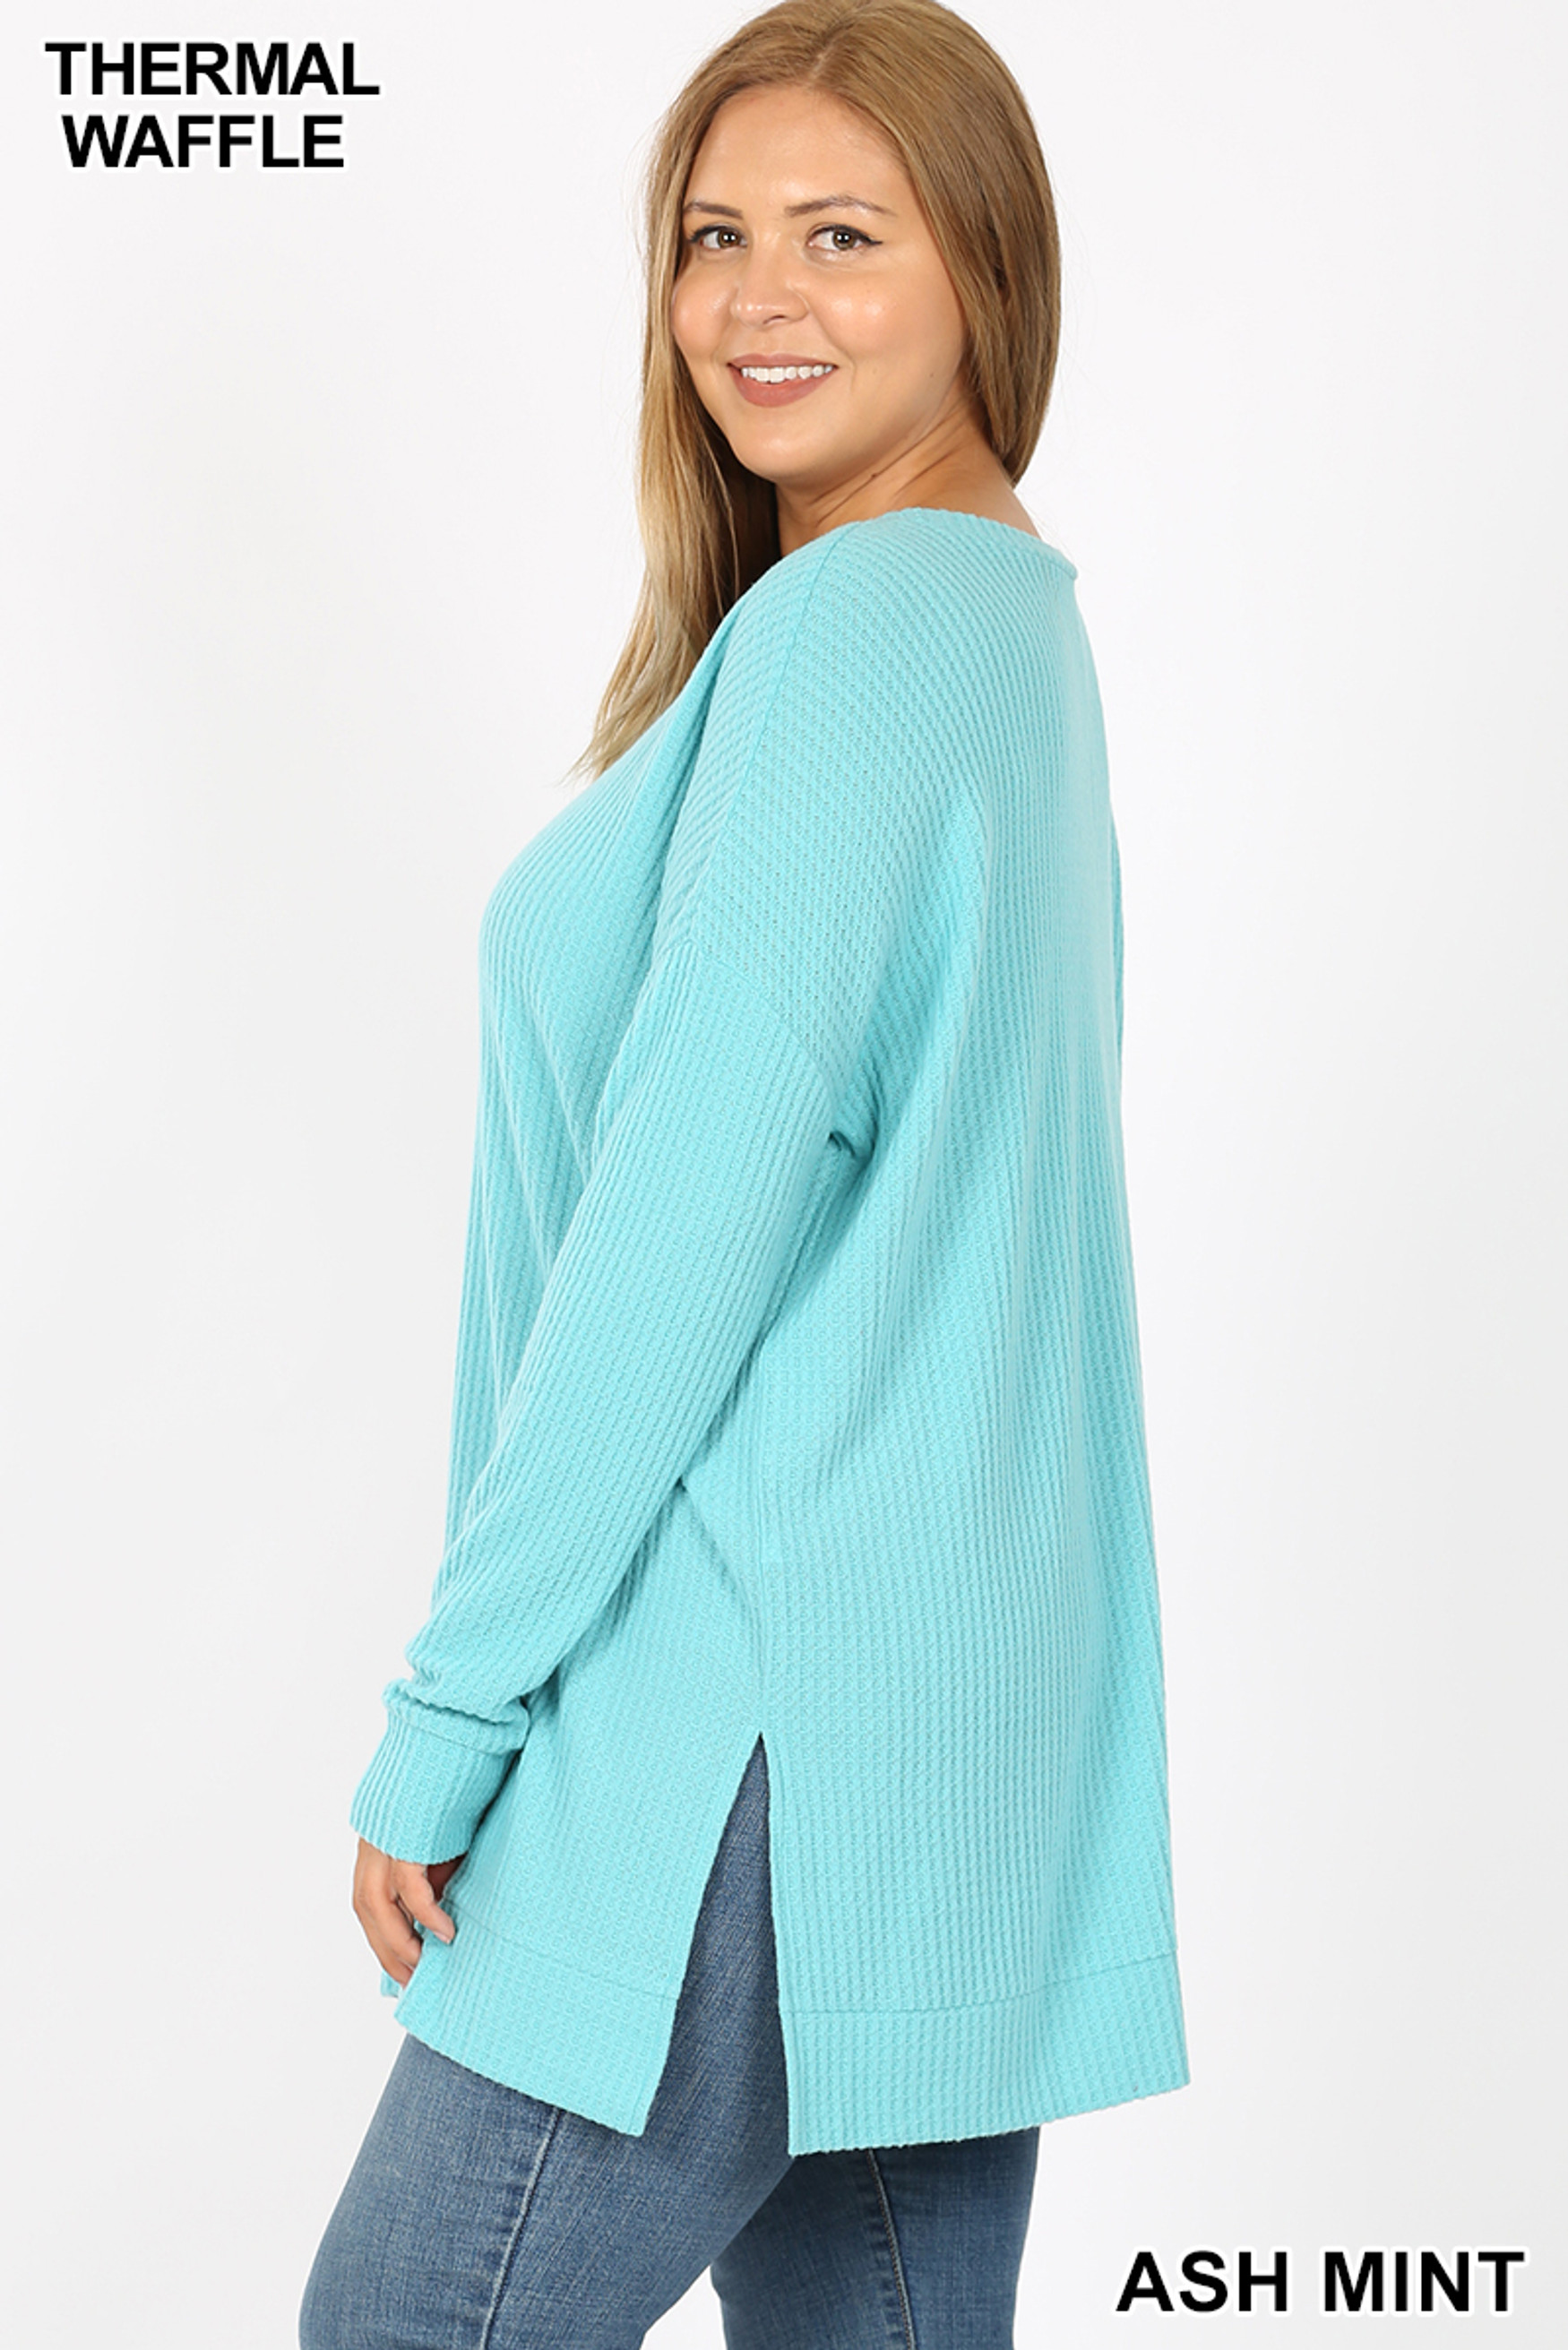 Left side of Ash Mint Brushed Thermal Waffle Knit Round Neck Plus Size Sweater